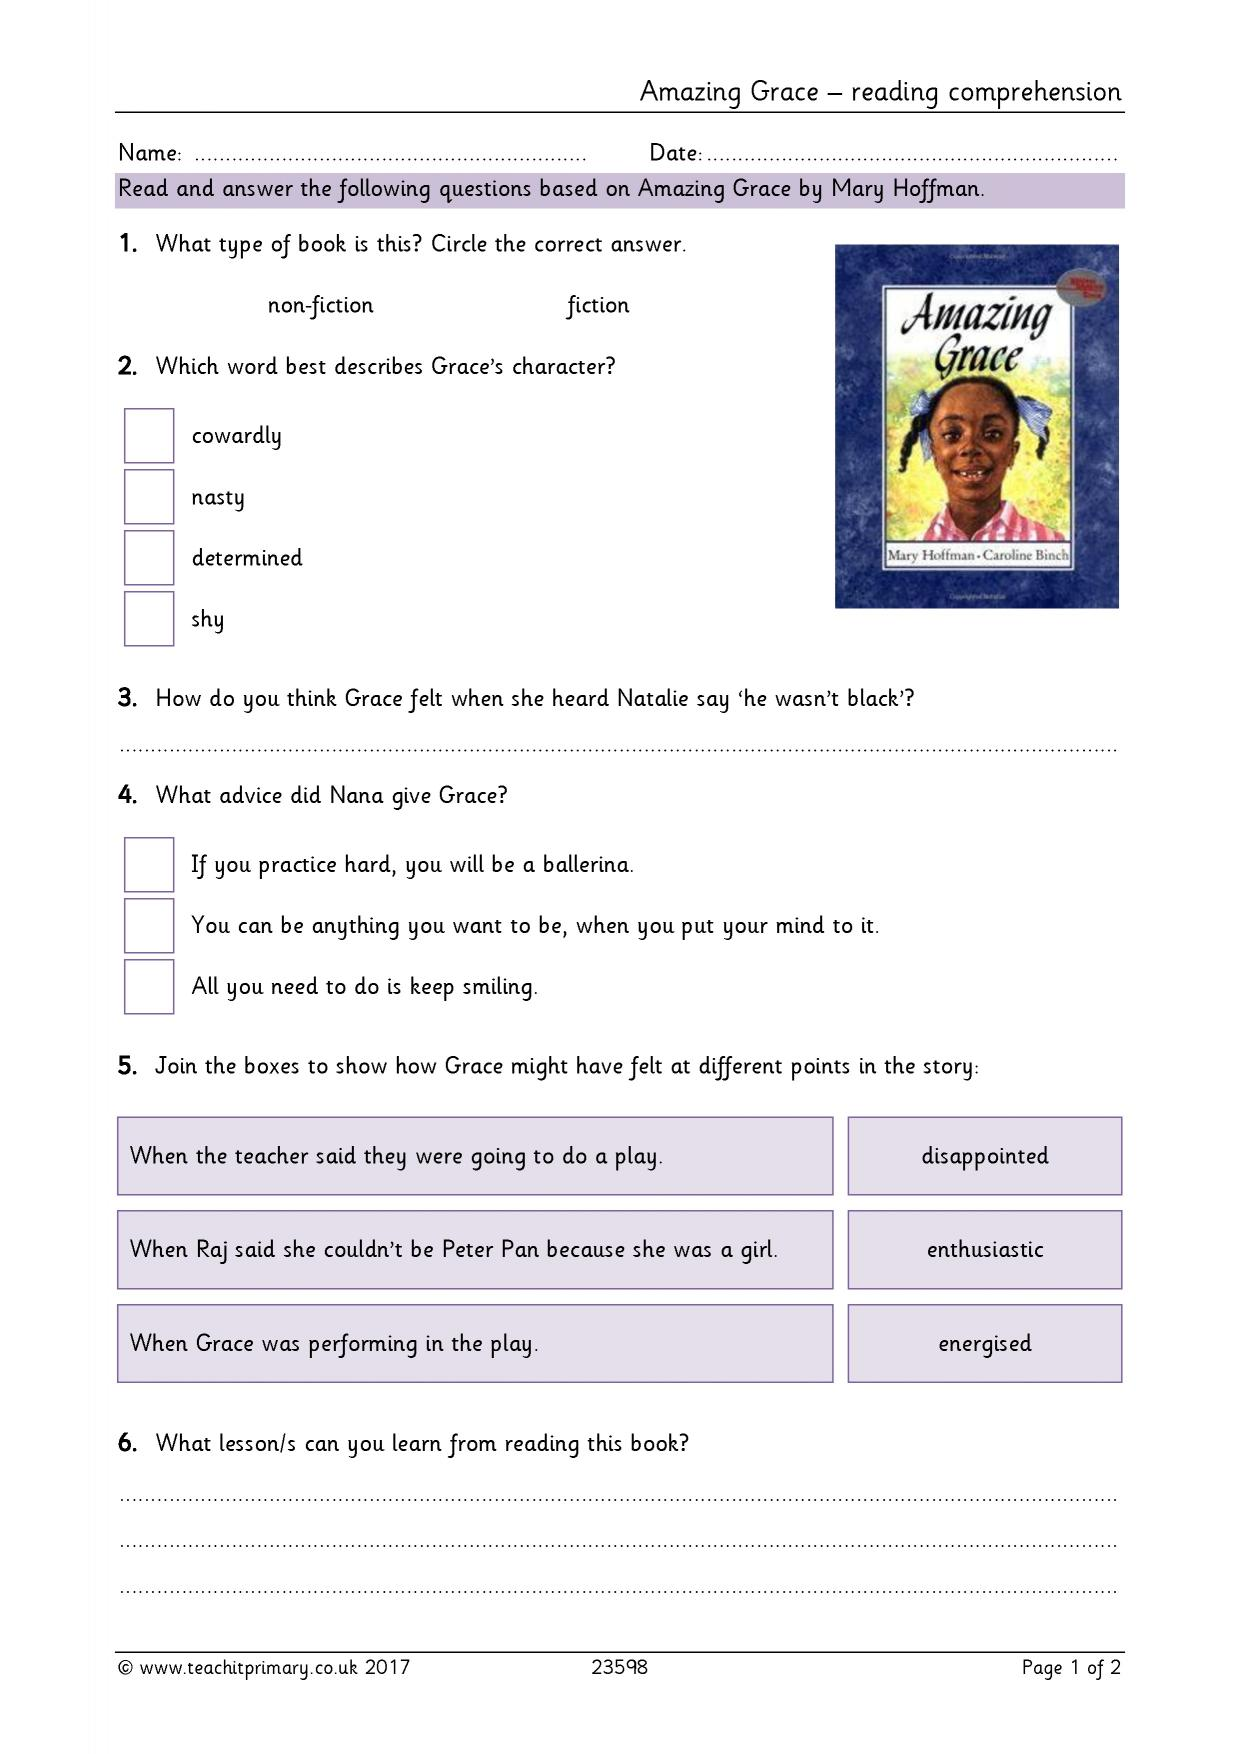 - Reading Comprehension Teaching Resources For FS, KS1 And KS2